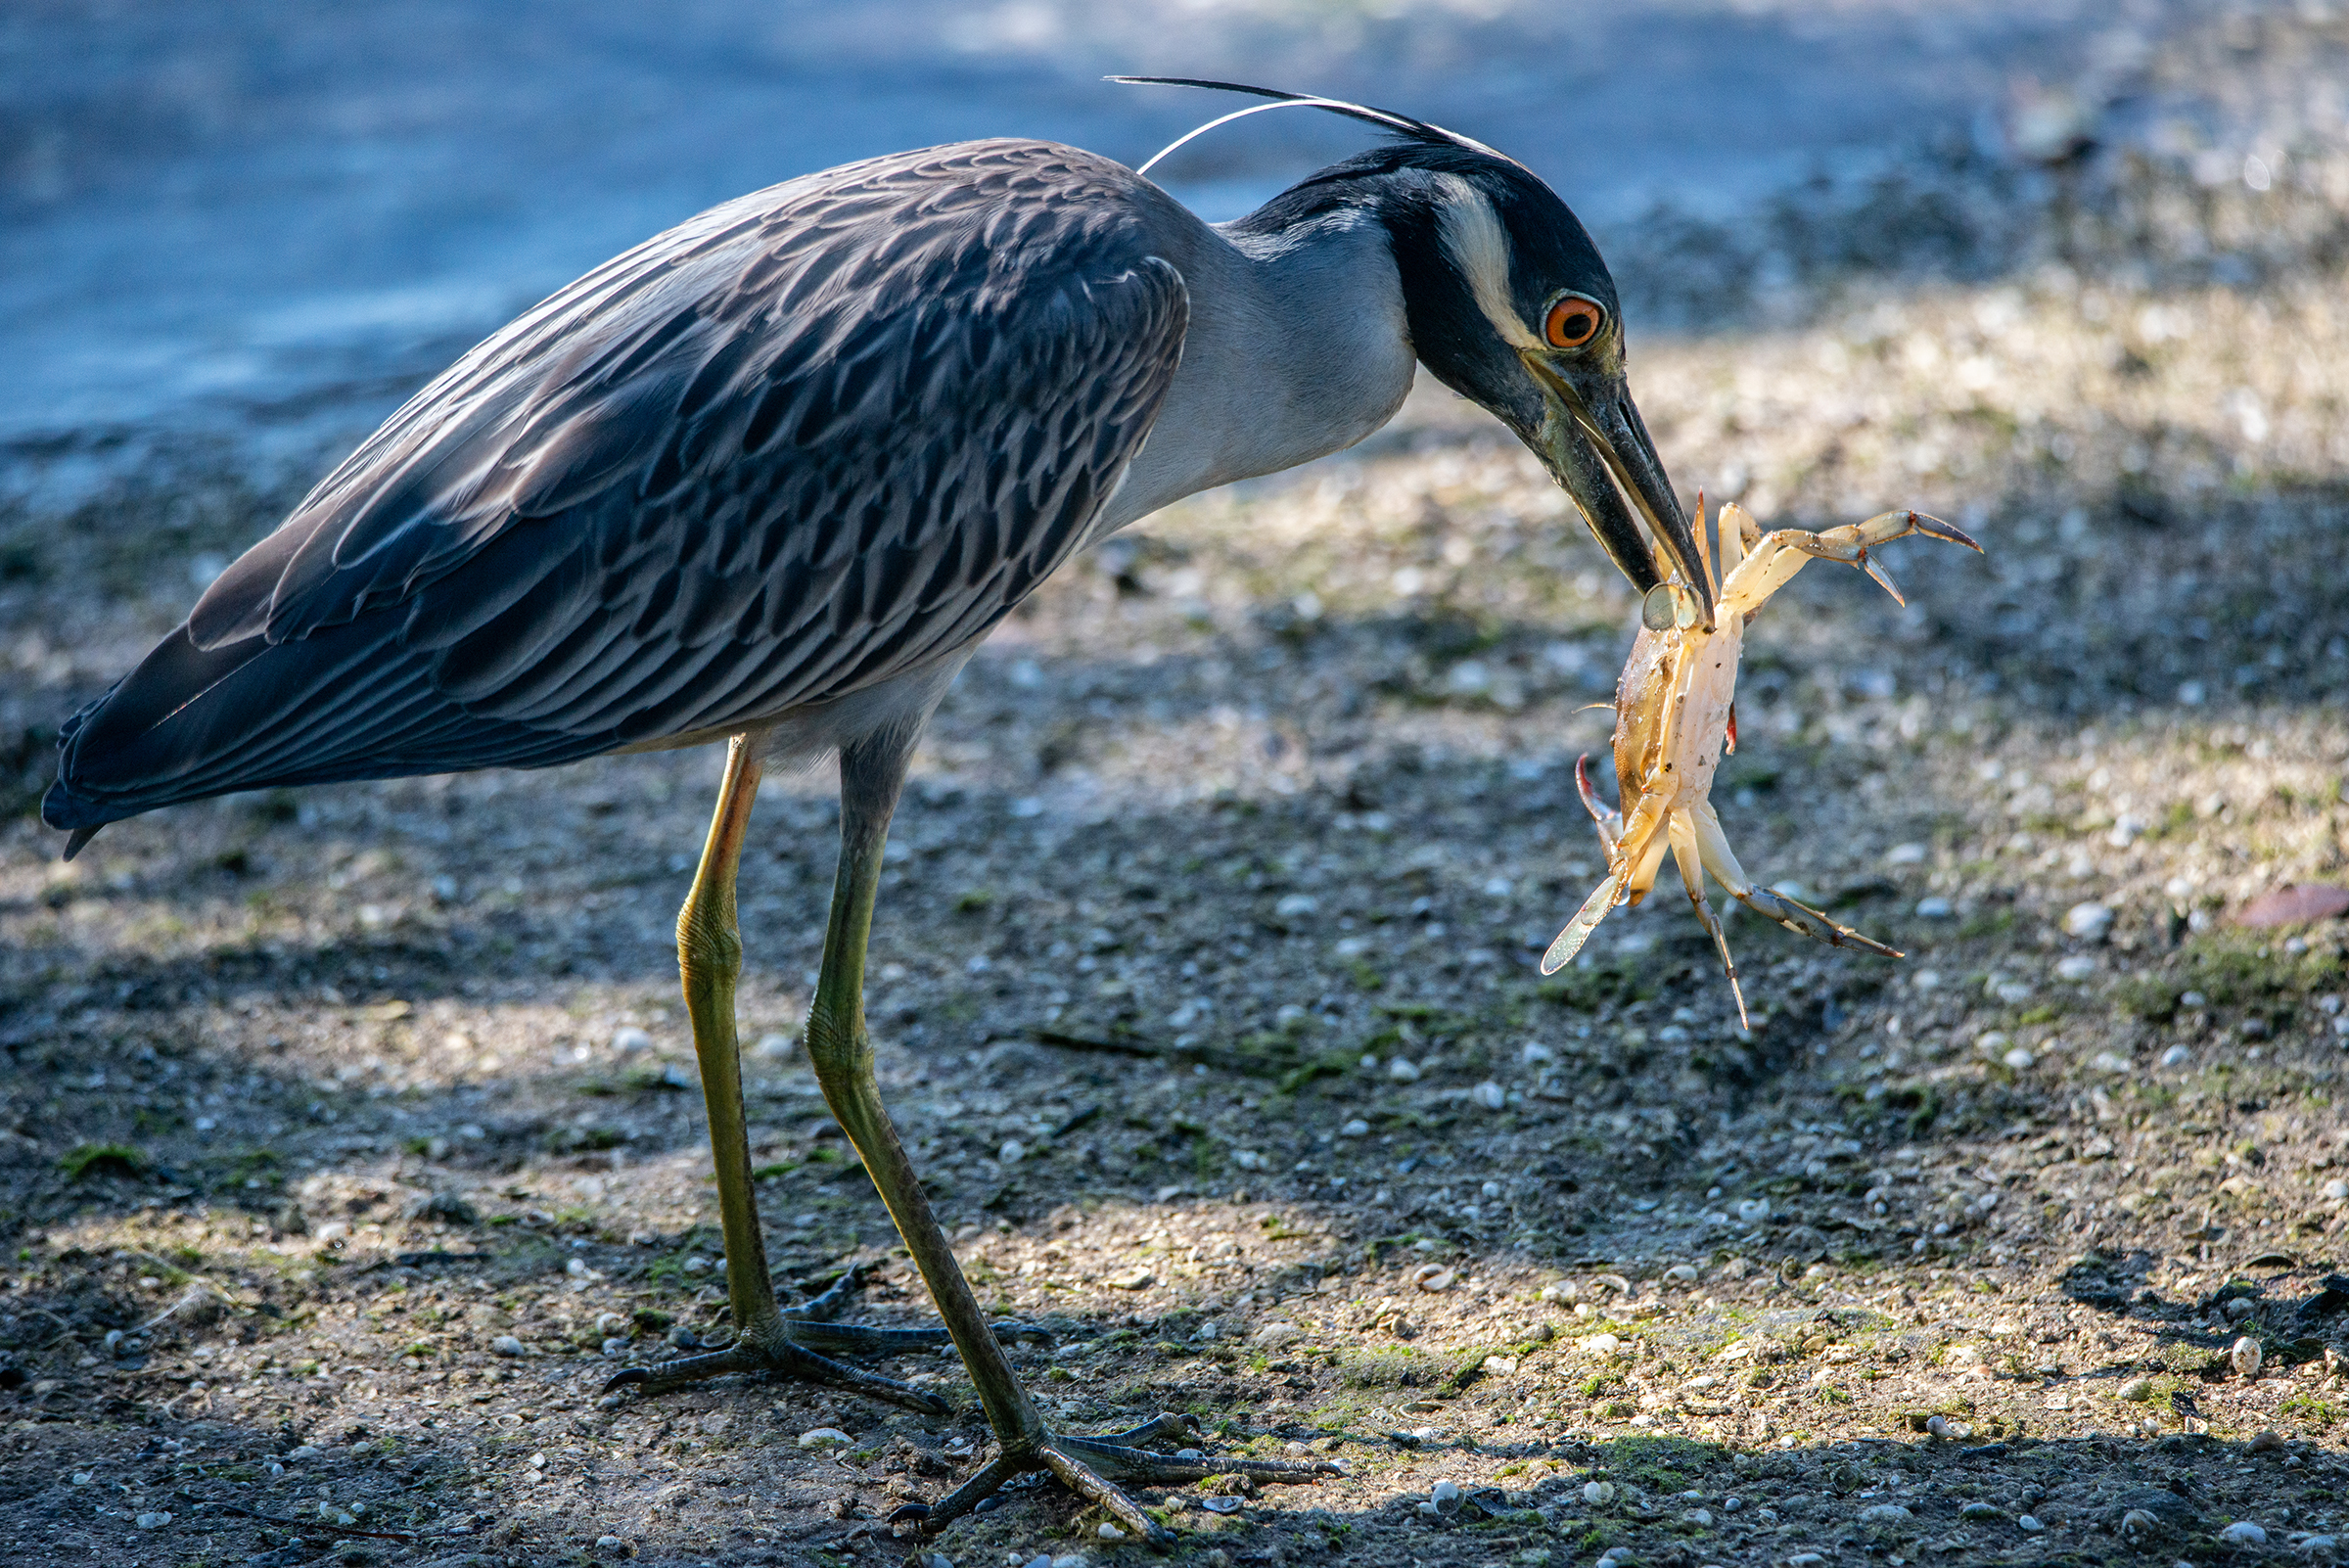 #yellowcrownednightheron, #heron, #nightheron, #birdphotography, #bird, #nature, #naturephotography, #wildlife, #wildlifephotography, #outdoorphotography, #florida, #sanibel, #dingdarling, #crab, #predatore, #prey, #closeup,